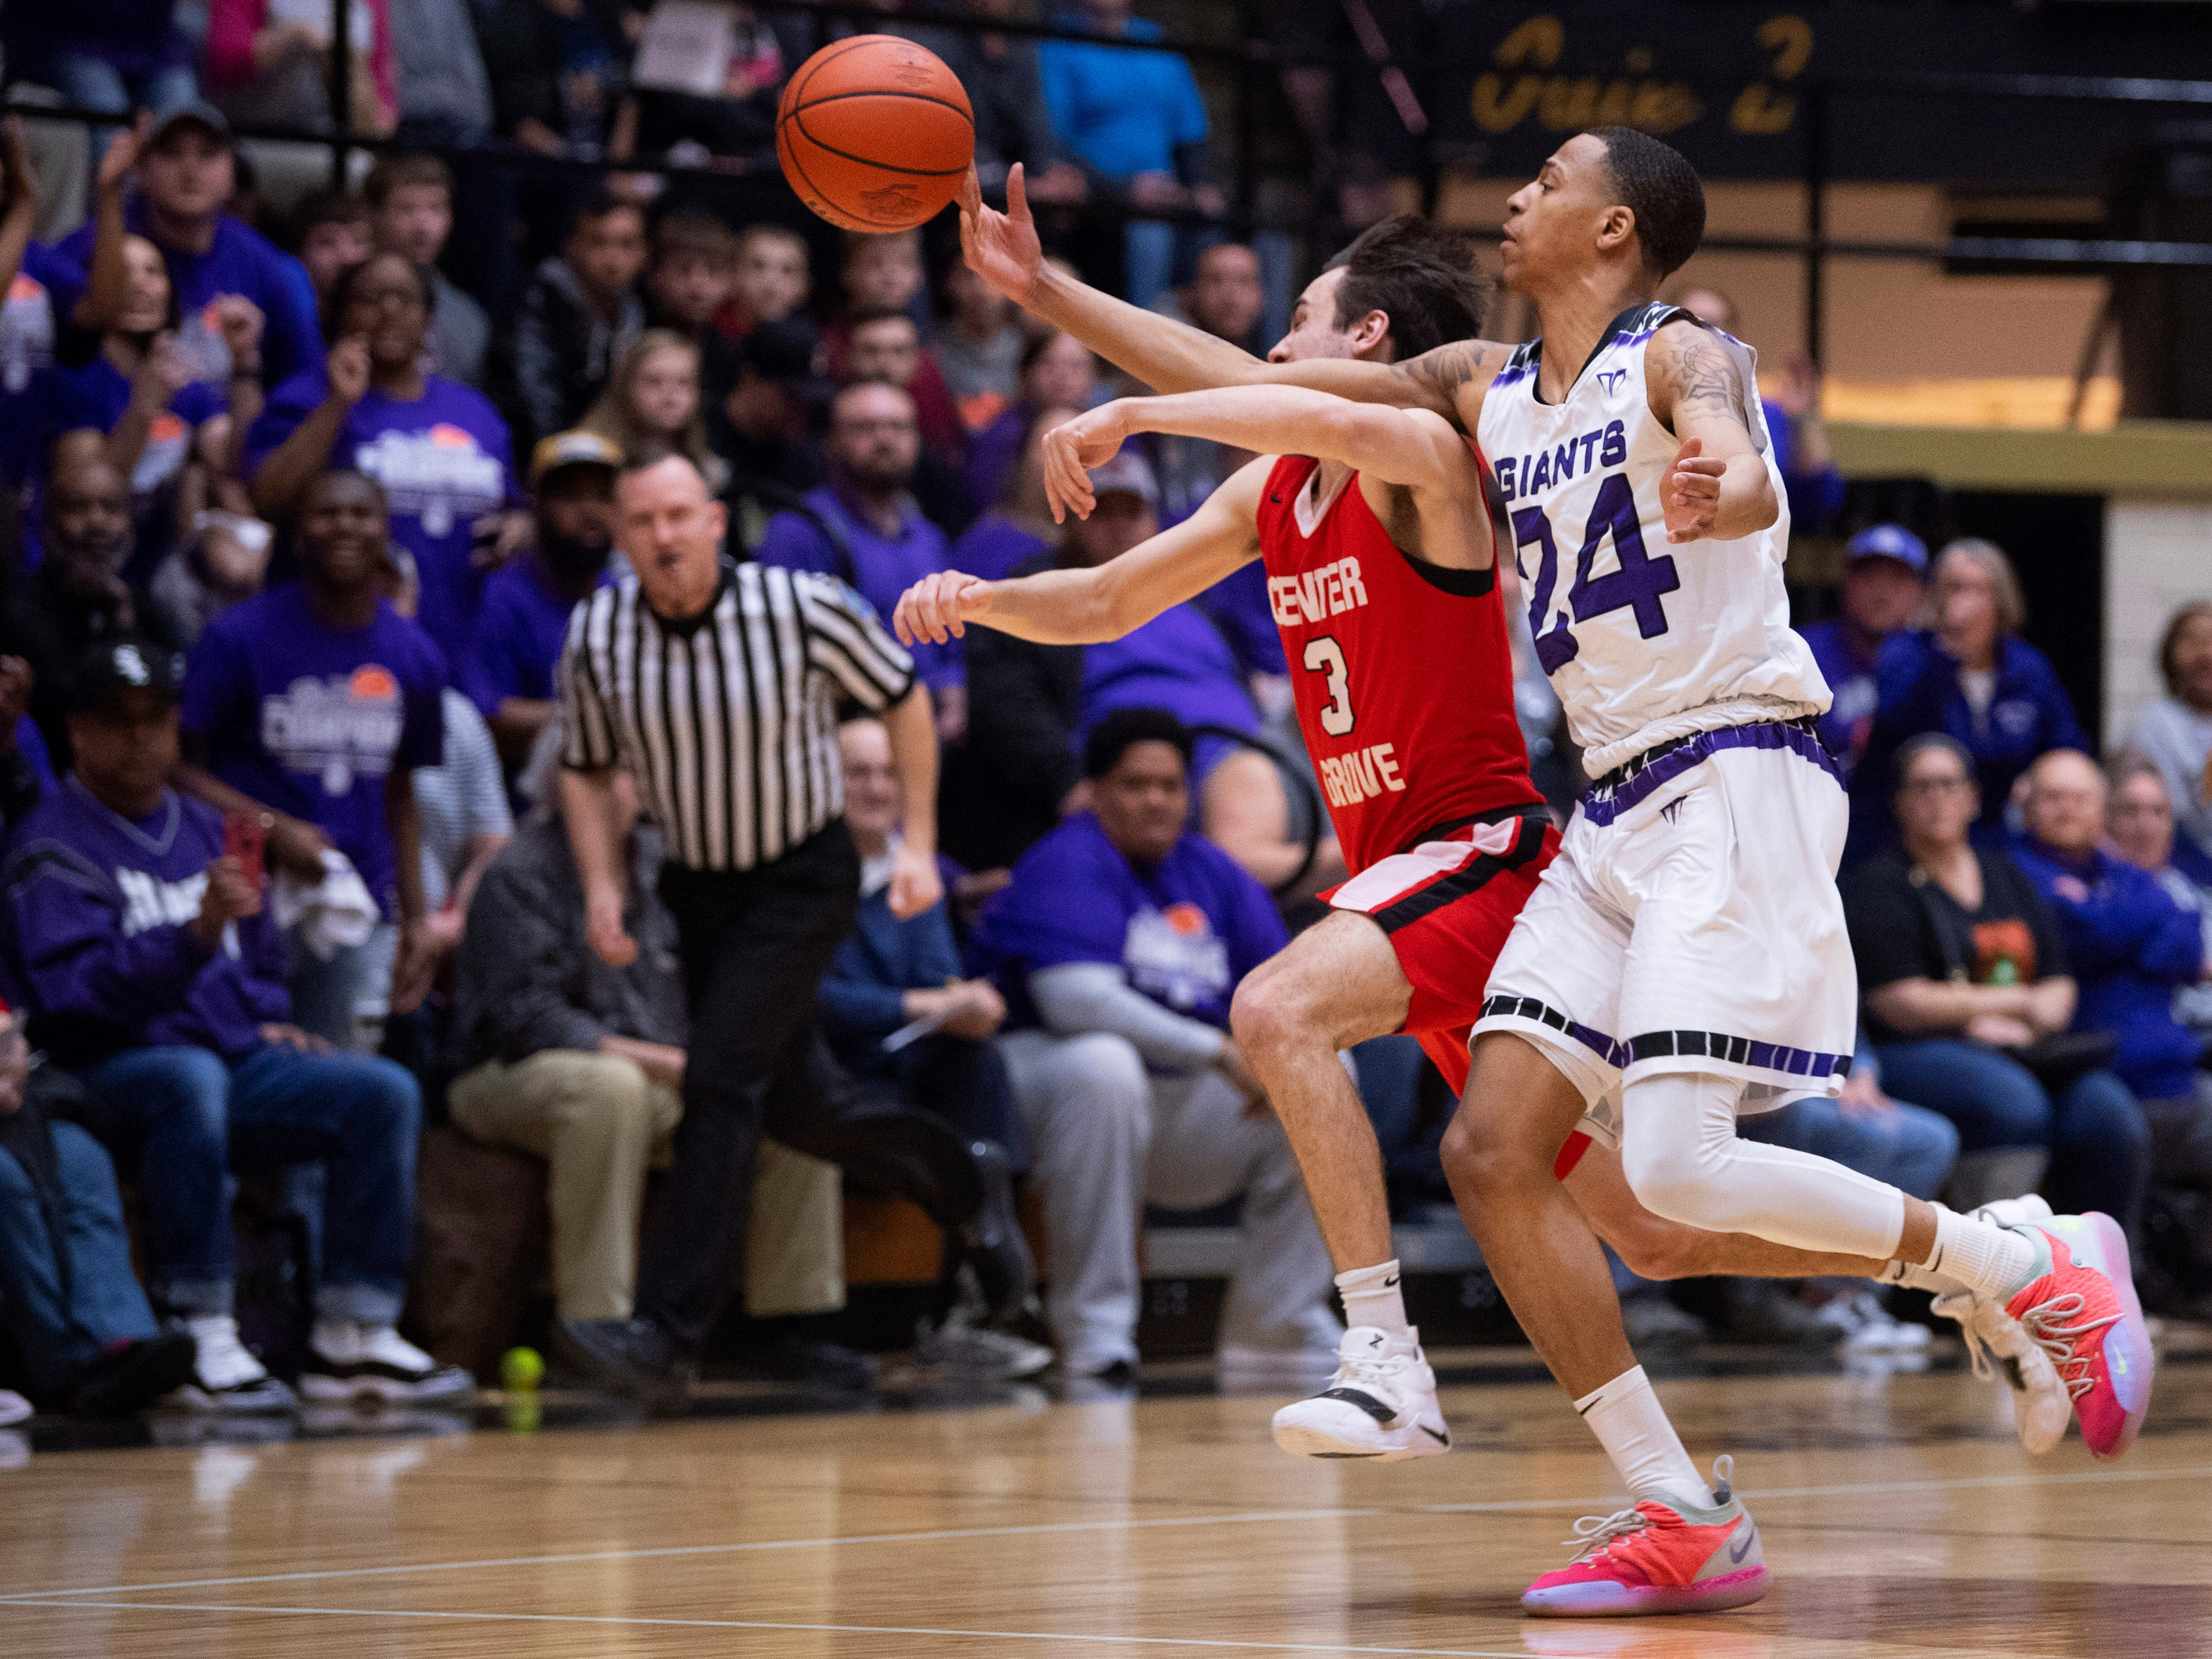 Ben Davis's Jalen Windham (24) gets to the ball a little quicker than Center Grove's Ben Greller (3) during the 4A Boys Indiana Semi-State Basketball Tournament at the Hatchet House in Washington, Ind., Saturday afternoon.